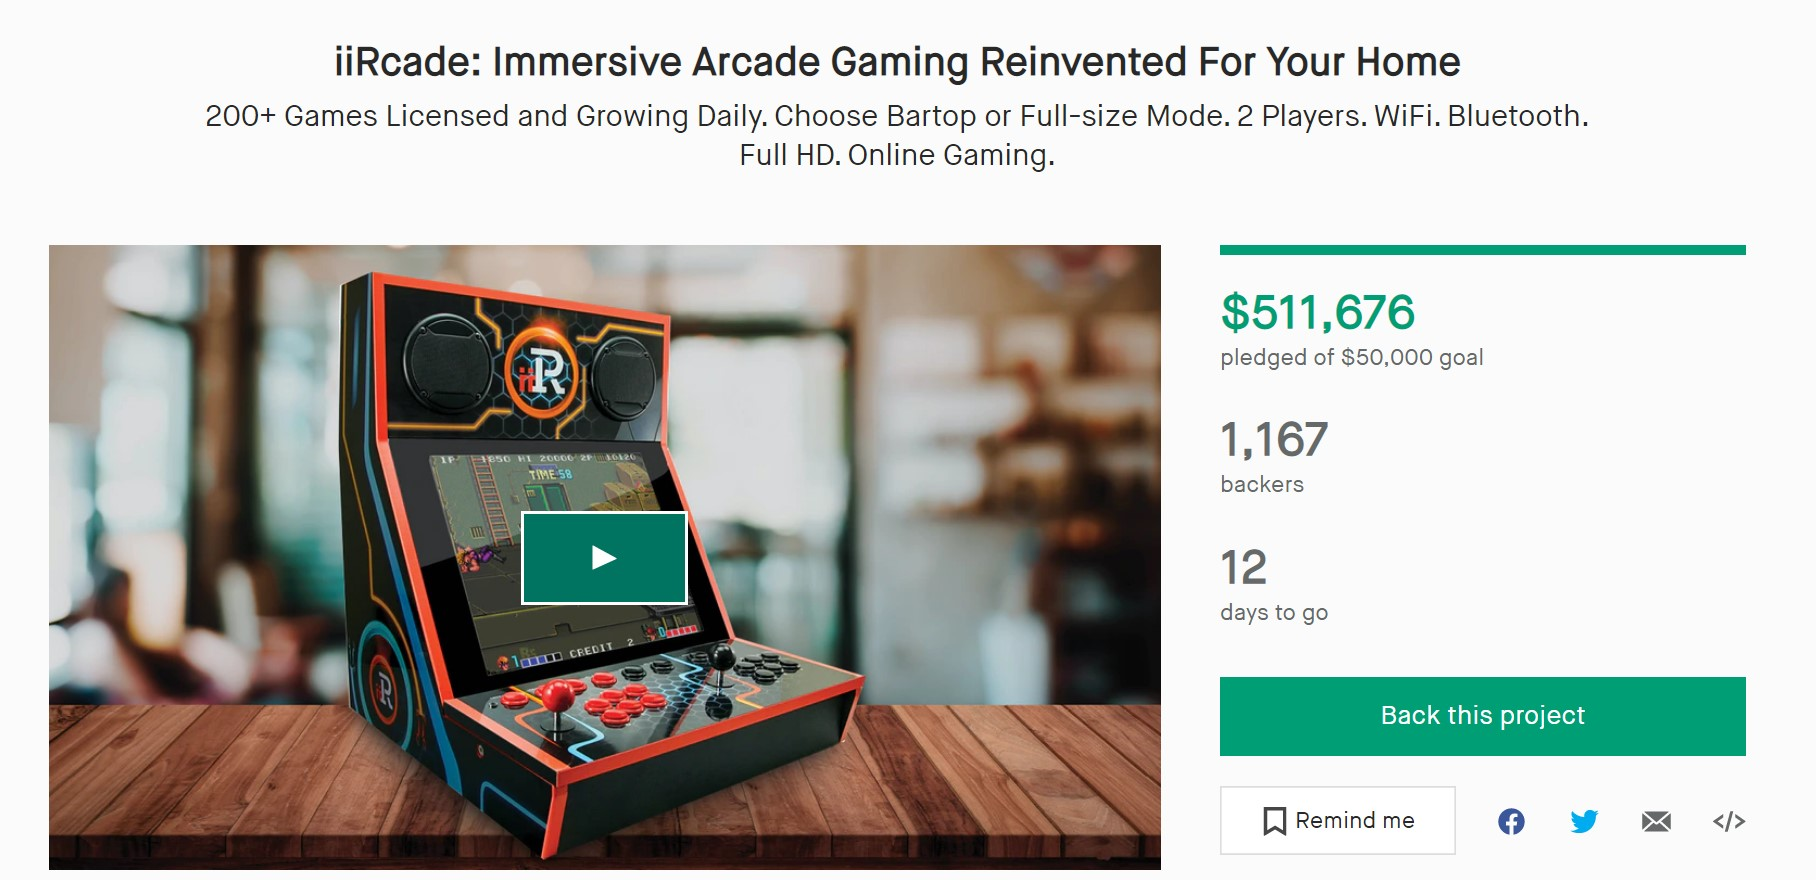 Kickstarter is one of our favorite crowdfunding websites.